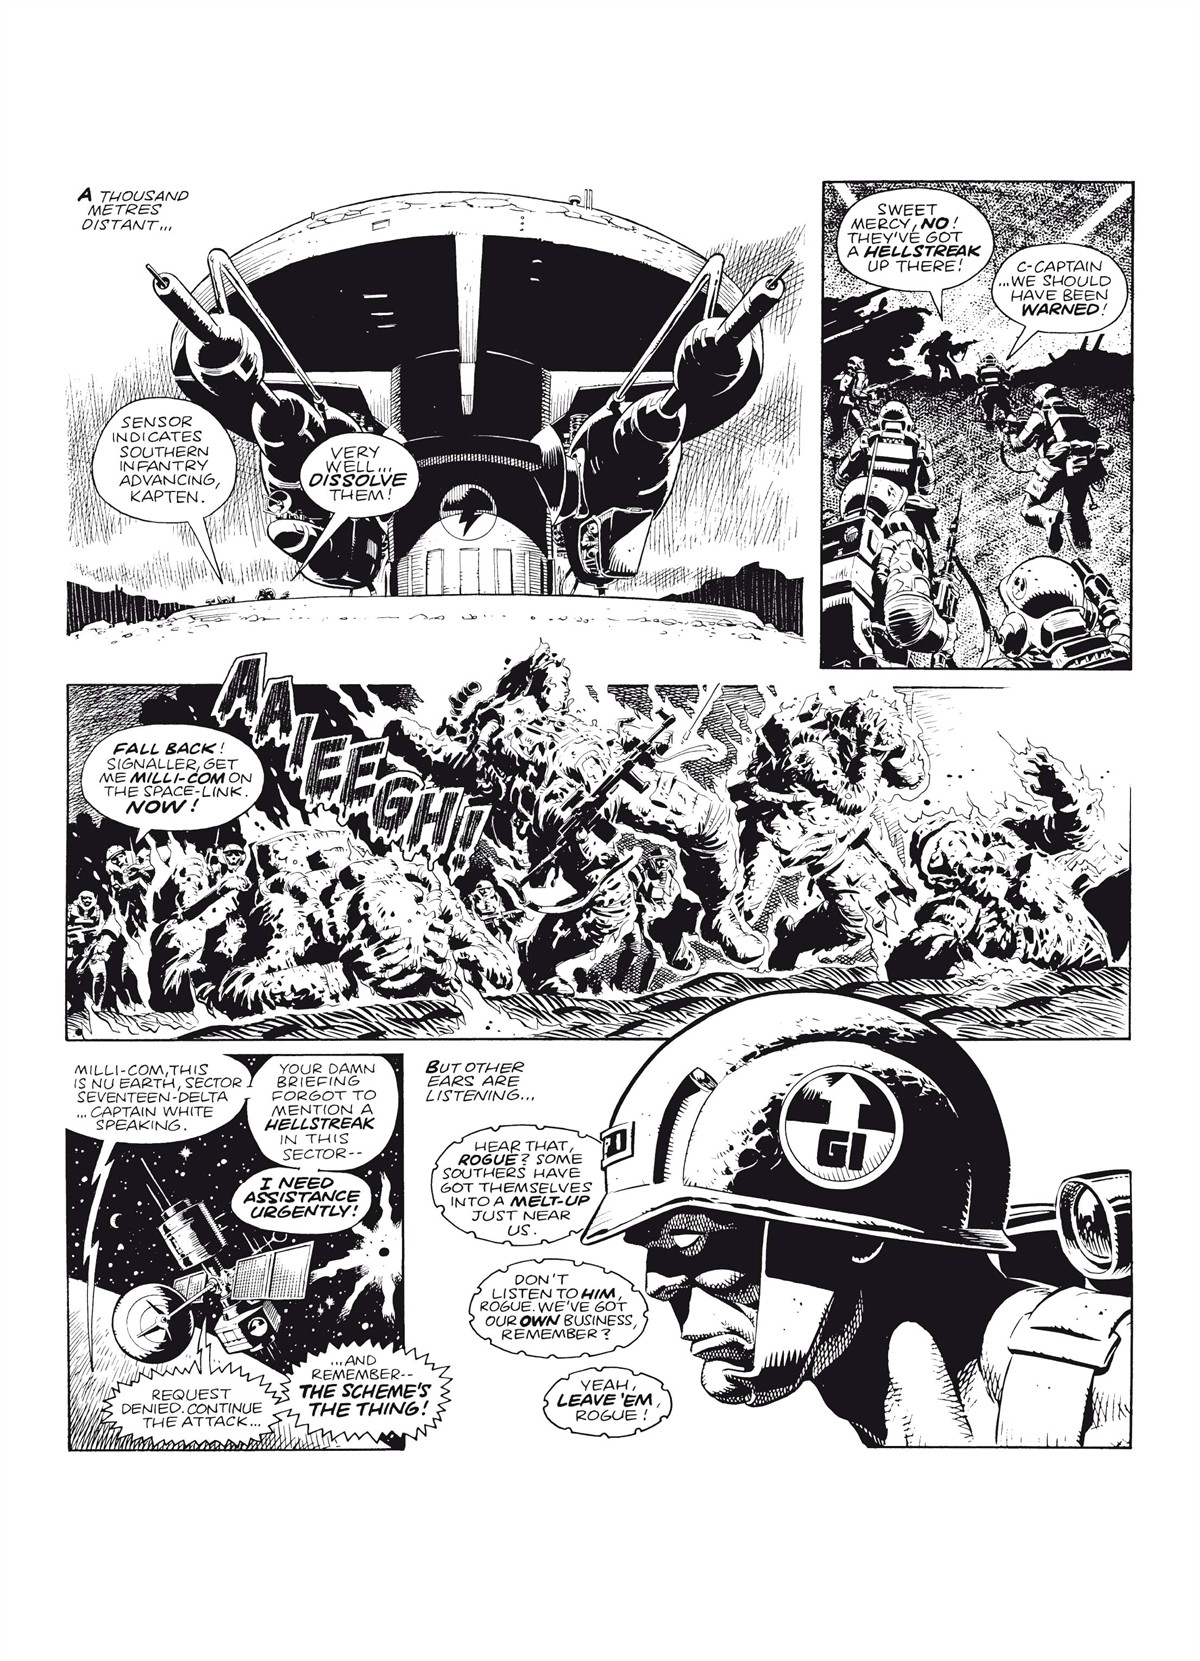 Rogue trooper tales of nu earth 1 9781907992704.in03